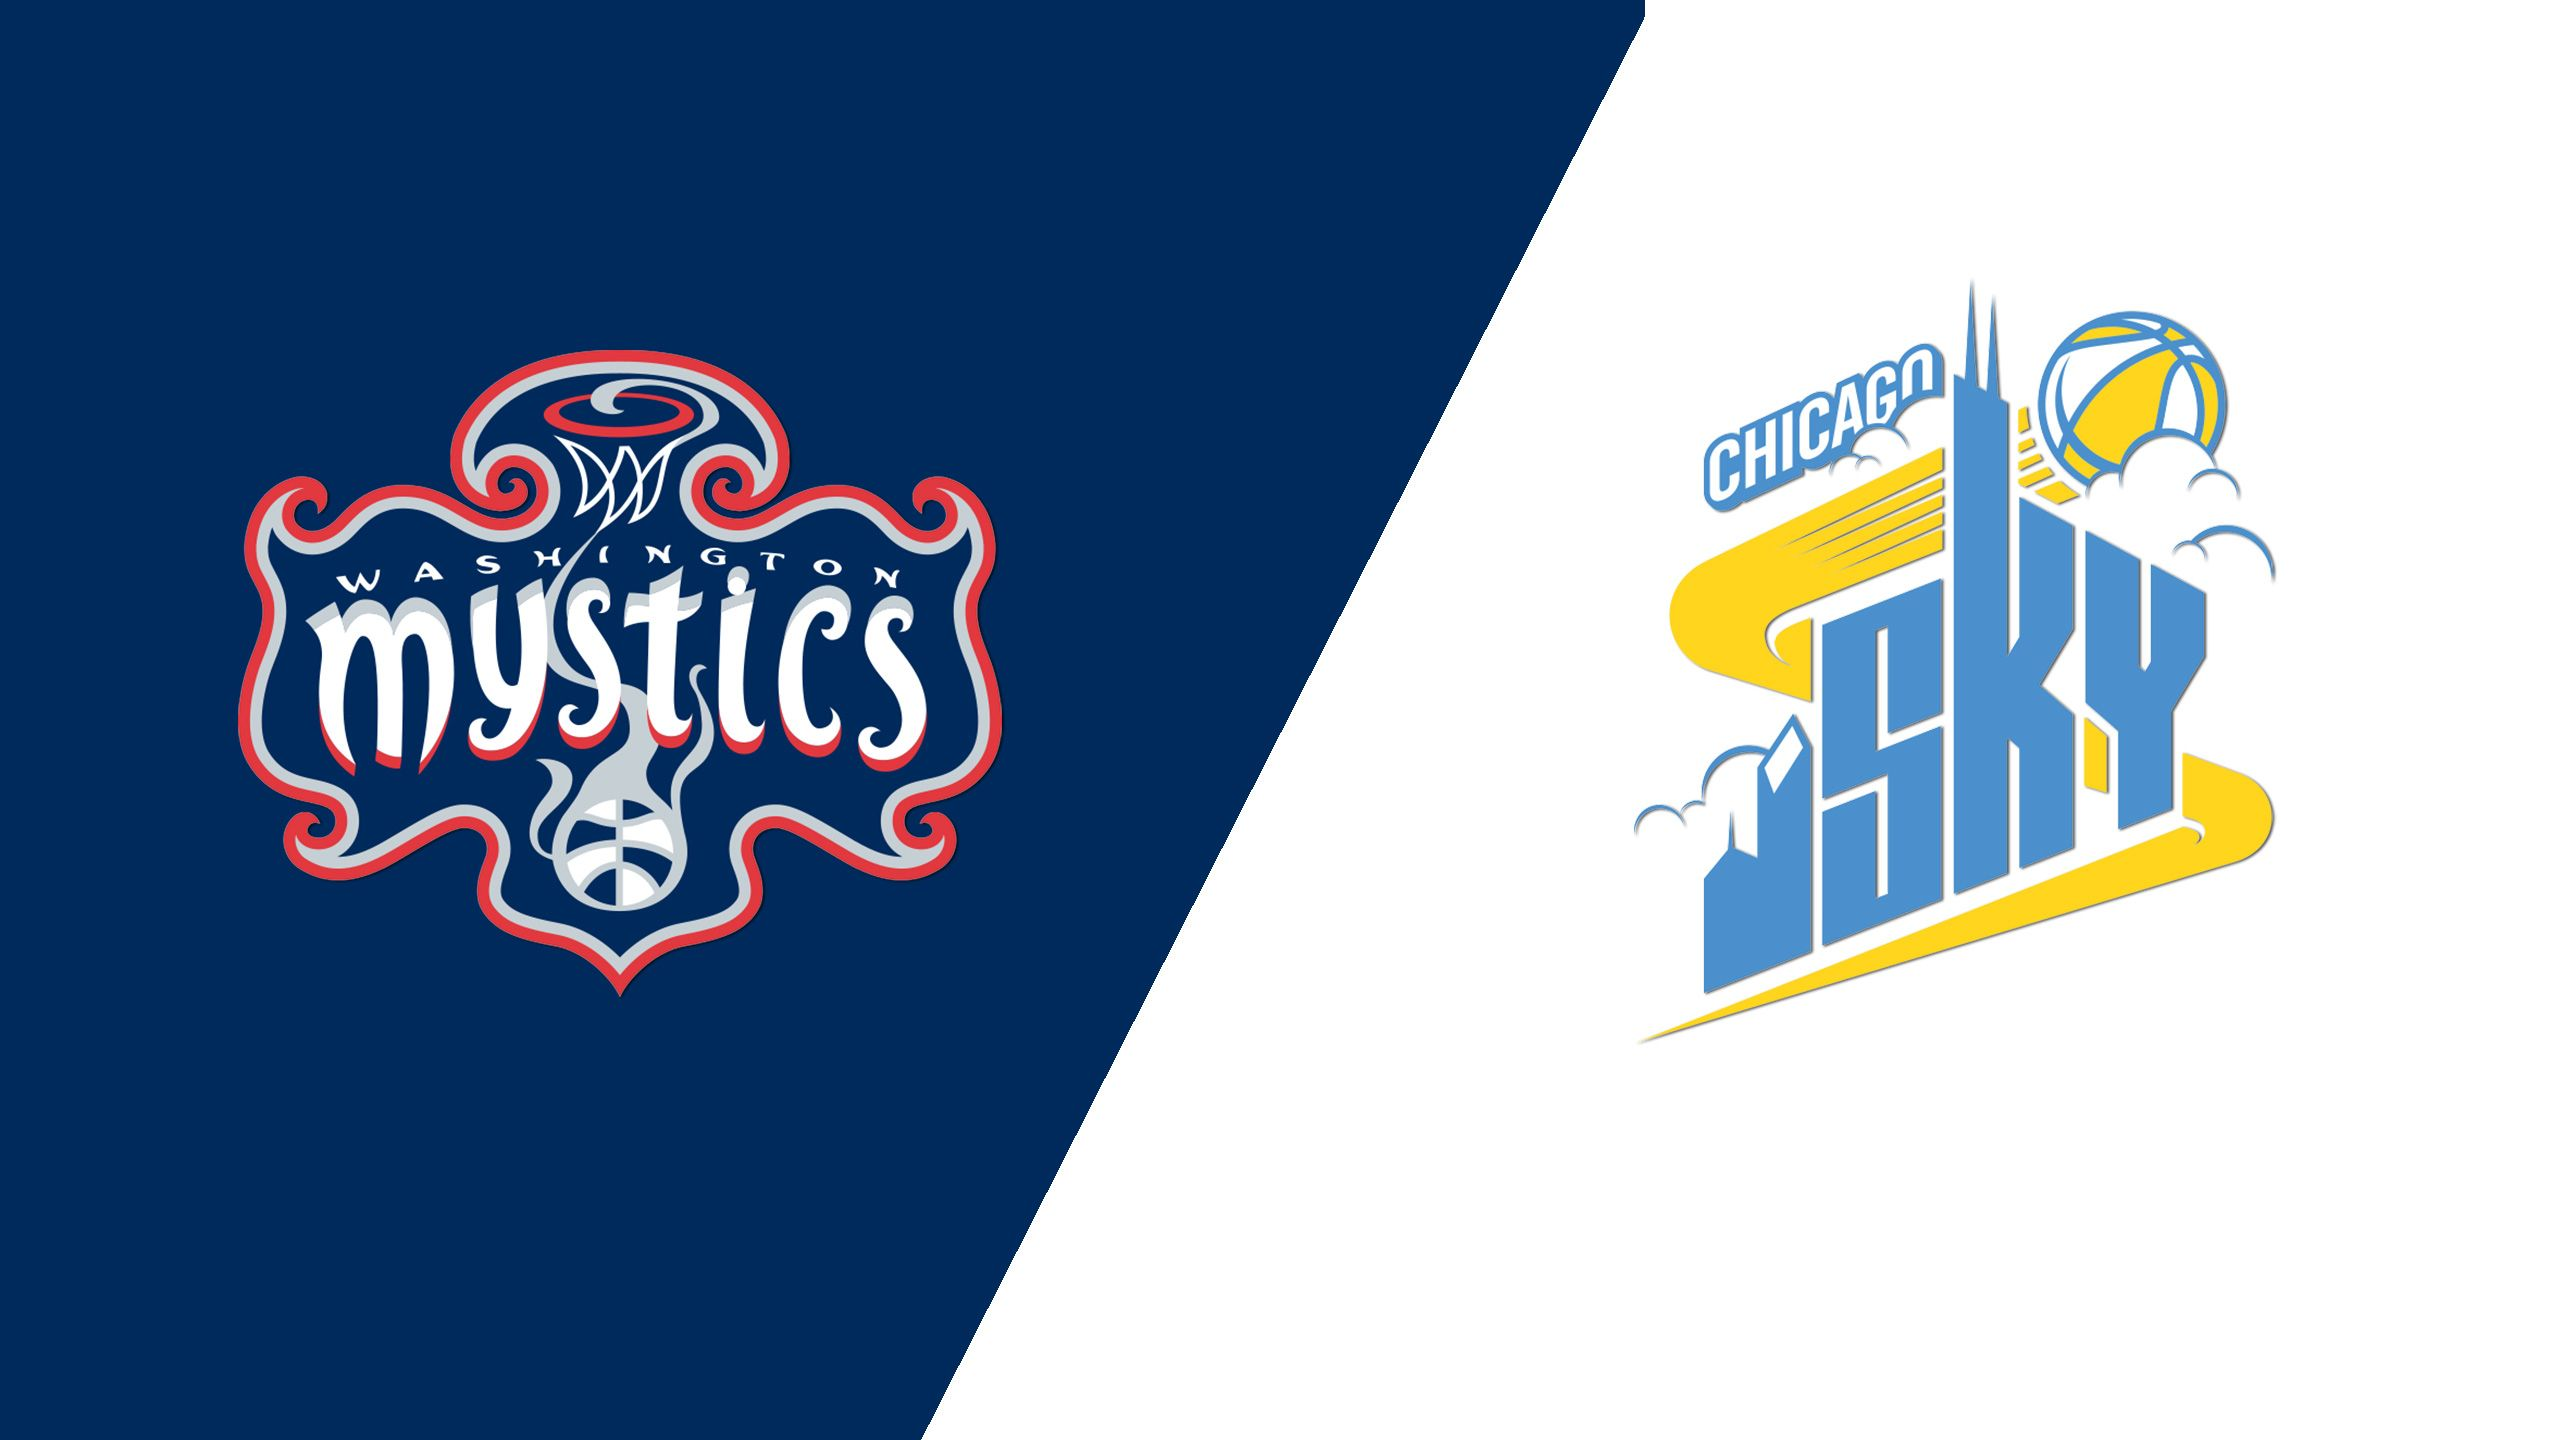 Washington Mystics vs. Chicago Sky